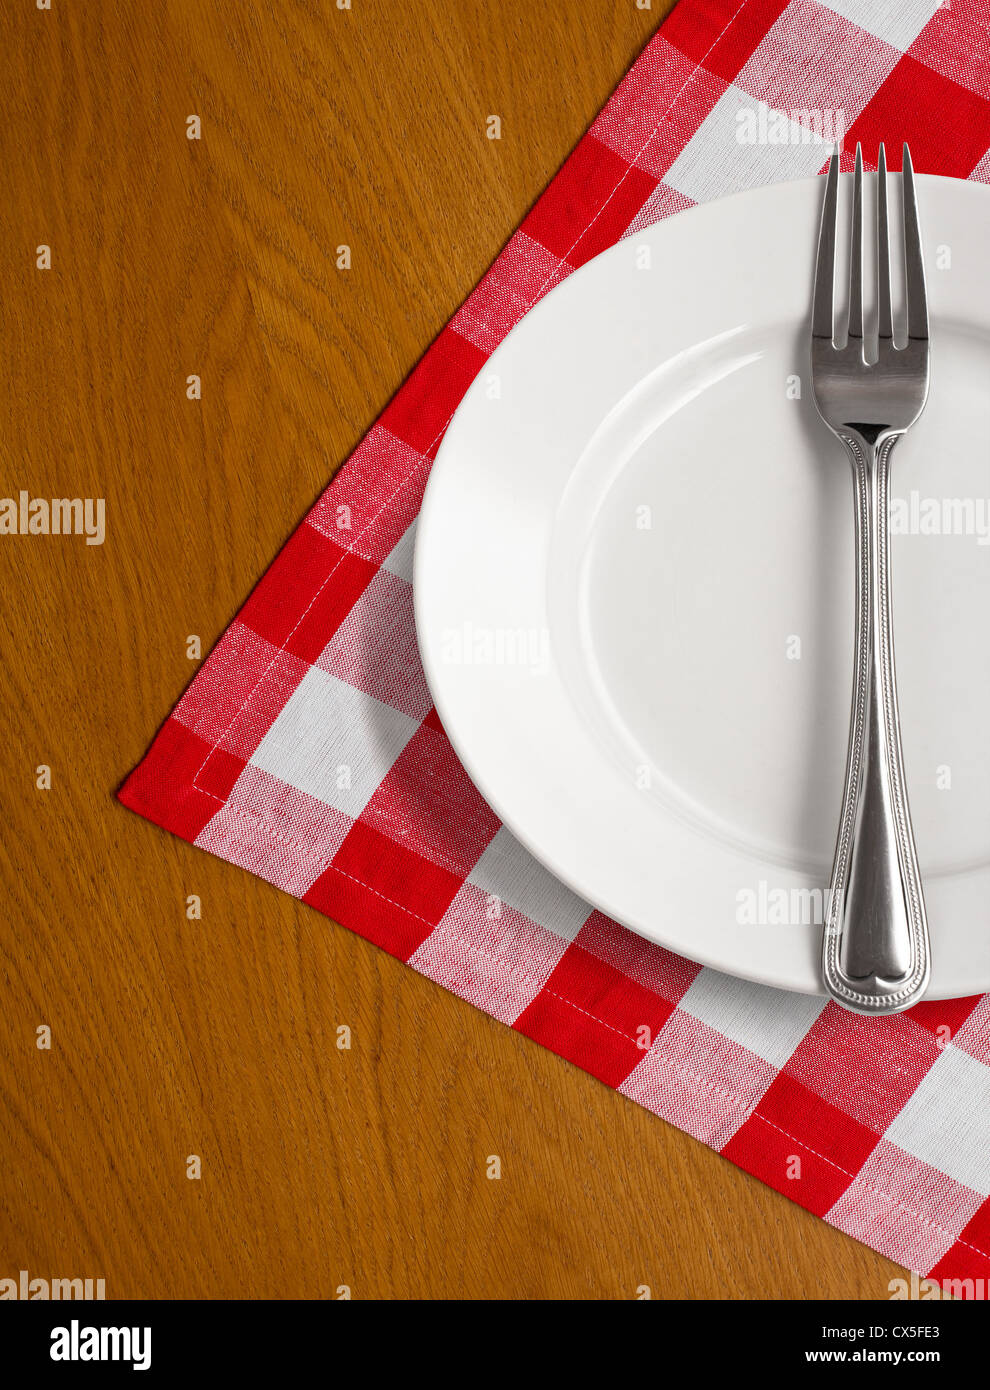 white plate and fork on wooden table with red checked tablecloth - Stock Image